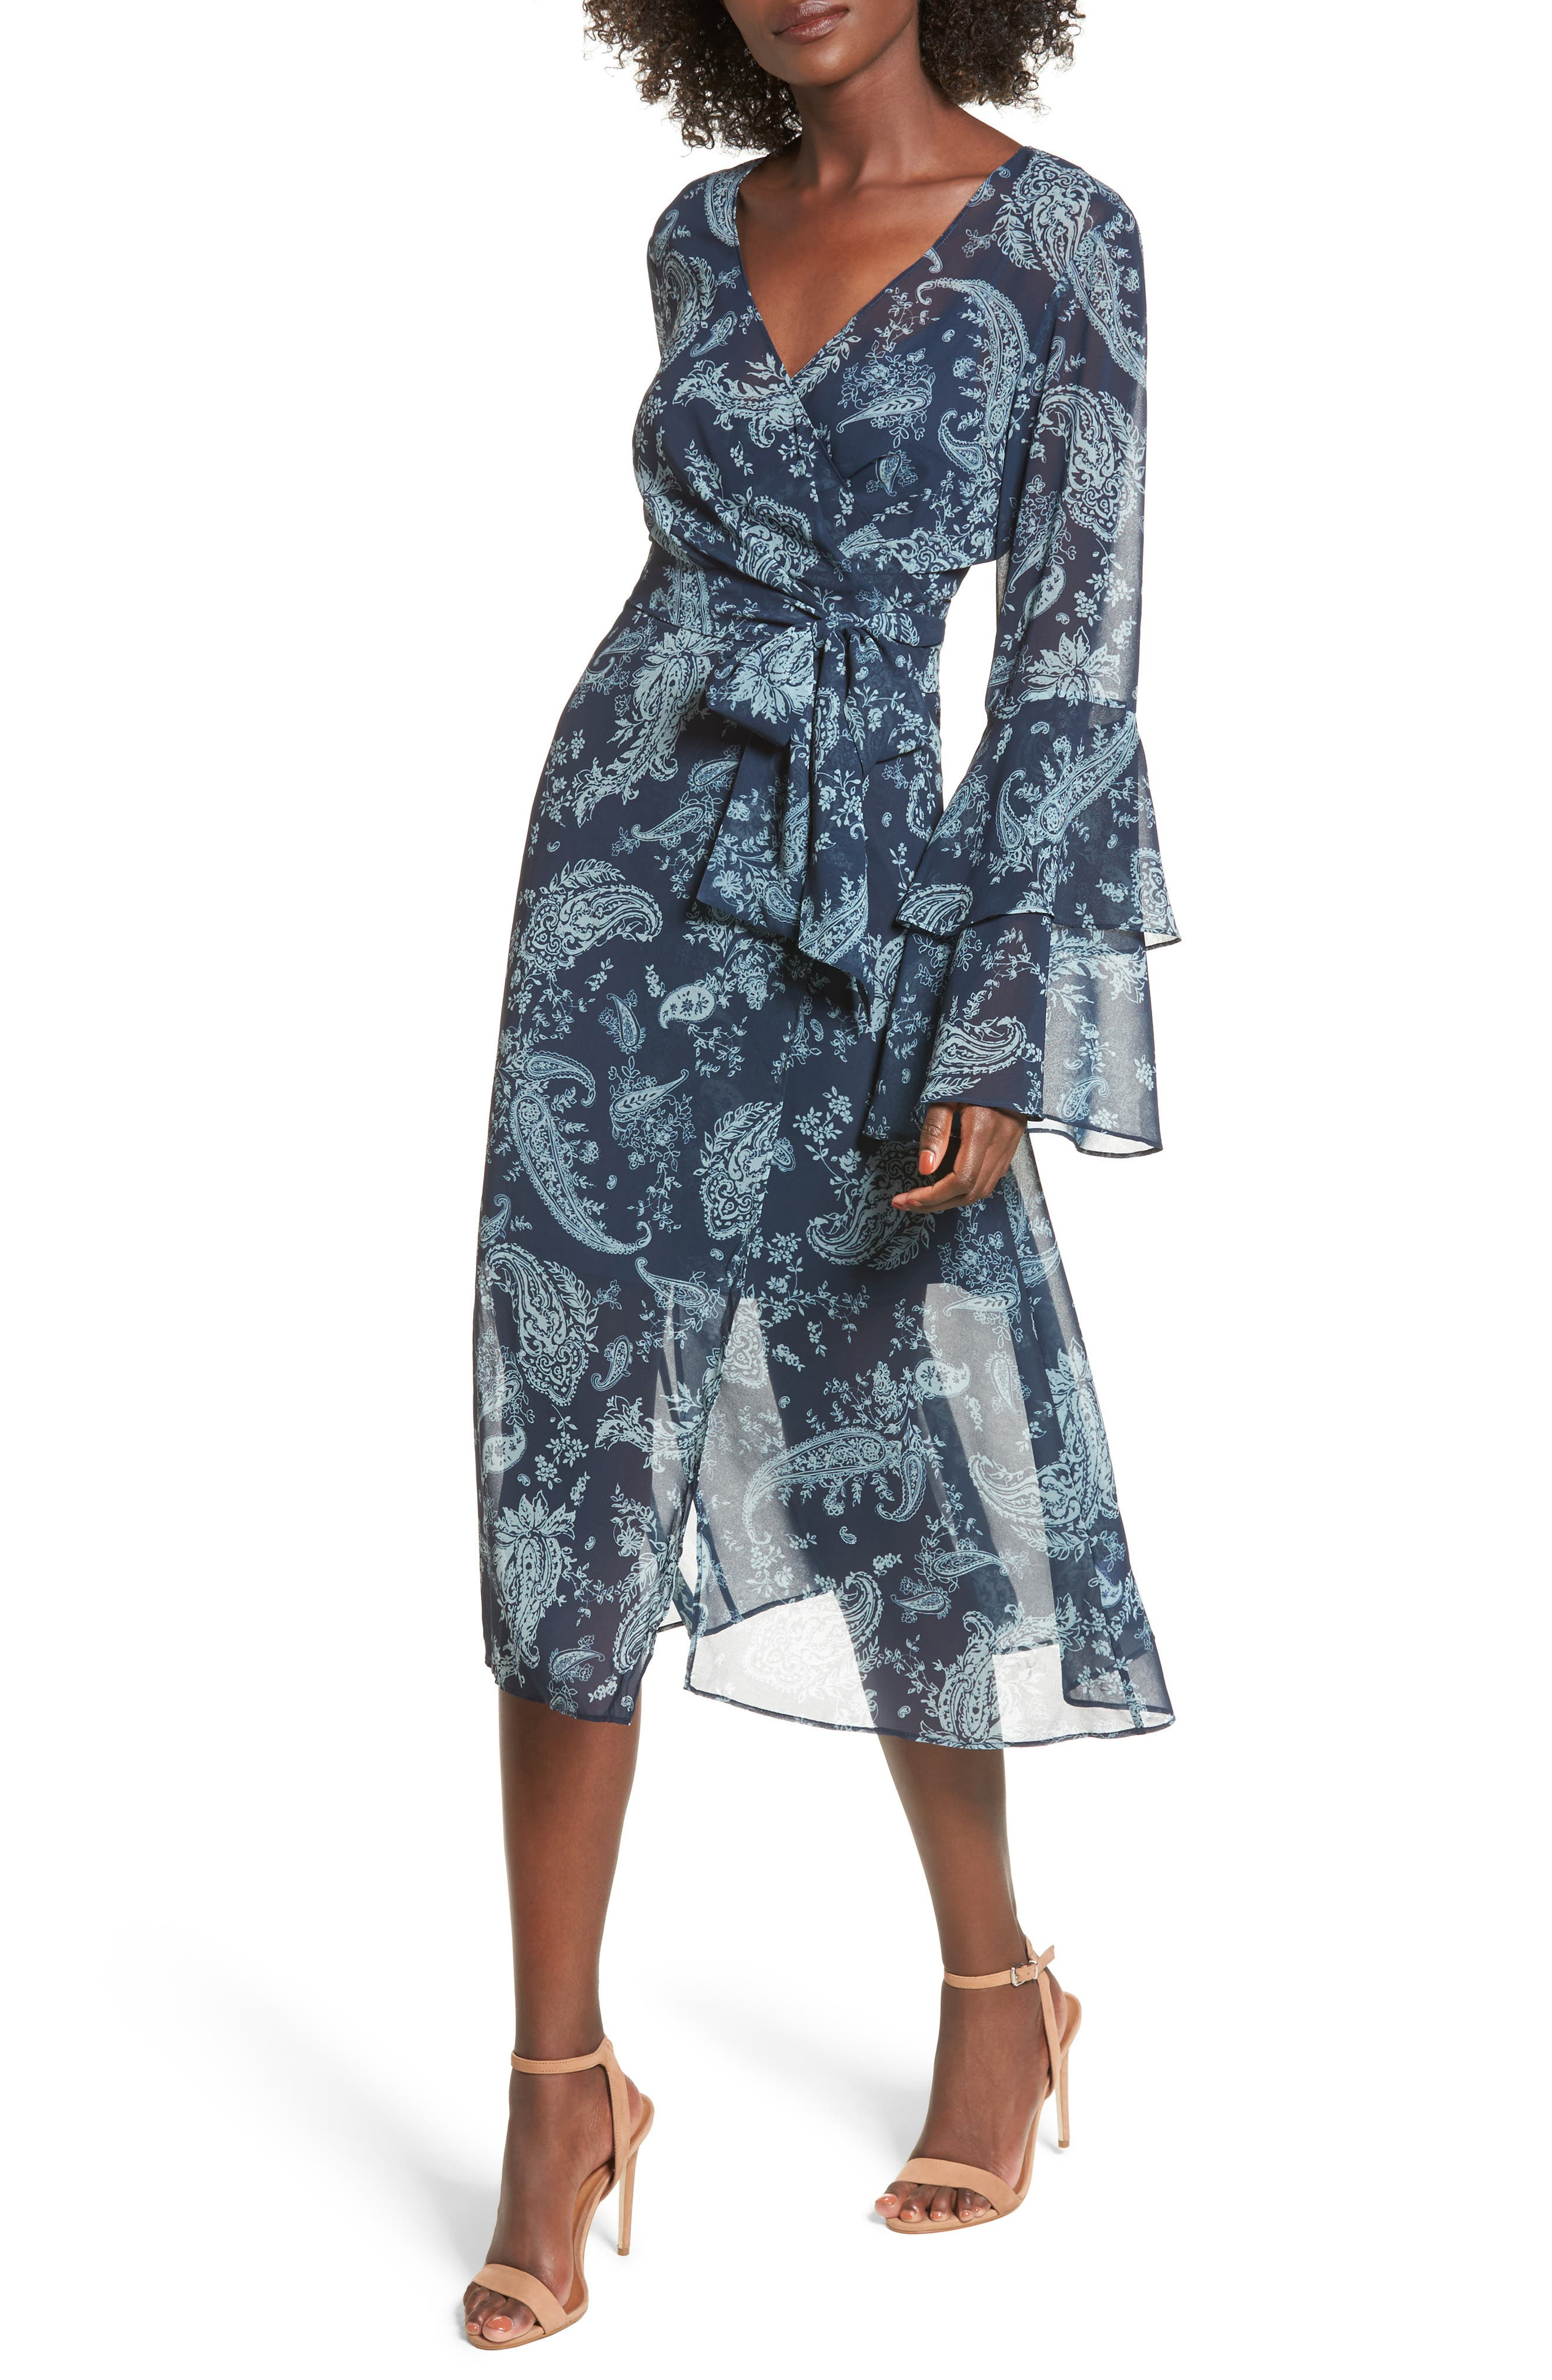 Go With It Wrap Midi Dress,                             Main thumbnail 1, color,                             401